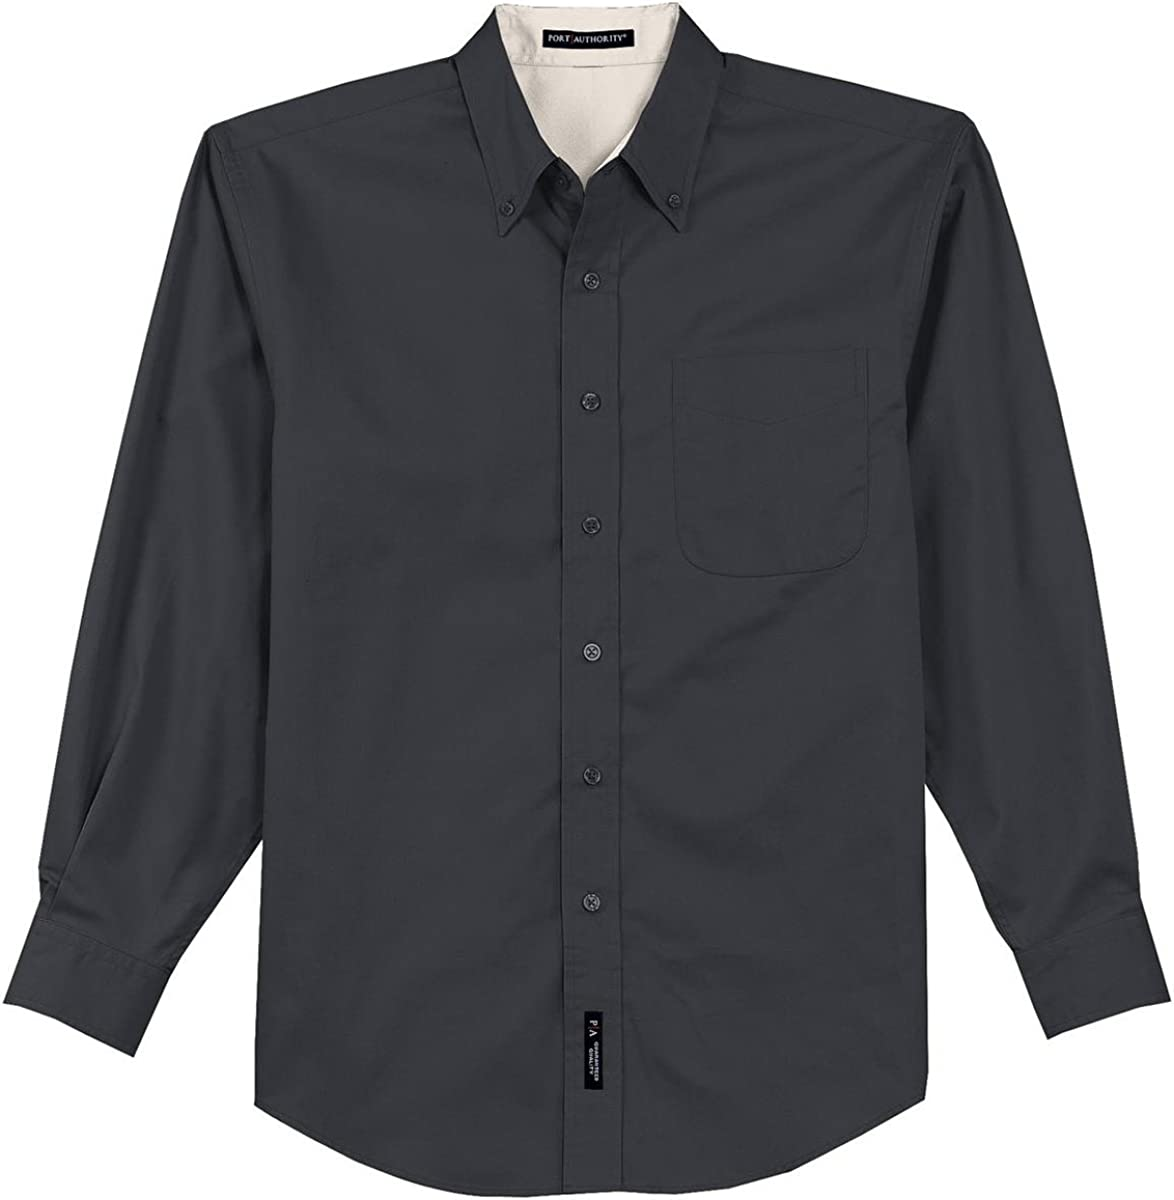 Port Authority Tall LS Easy Care Shirt-XLT (Classic Navy/Light Stone)